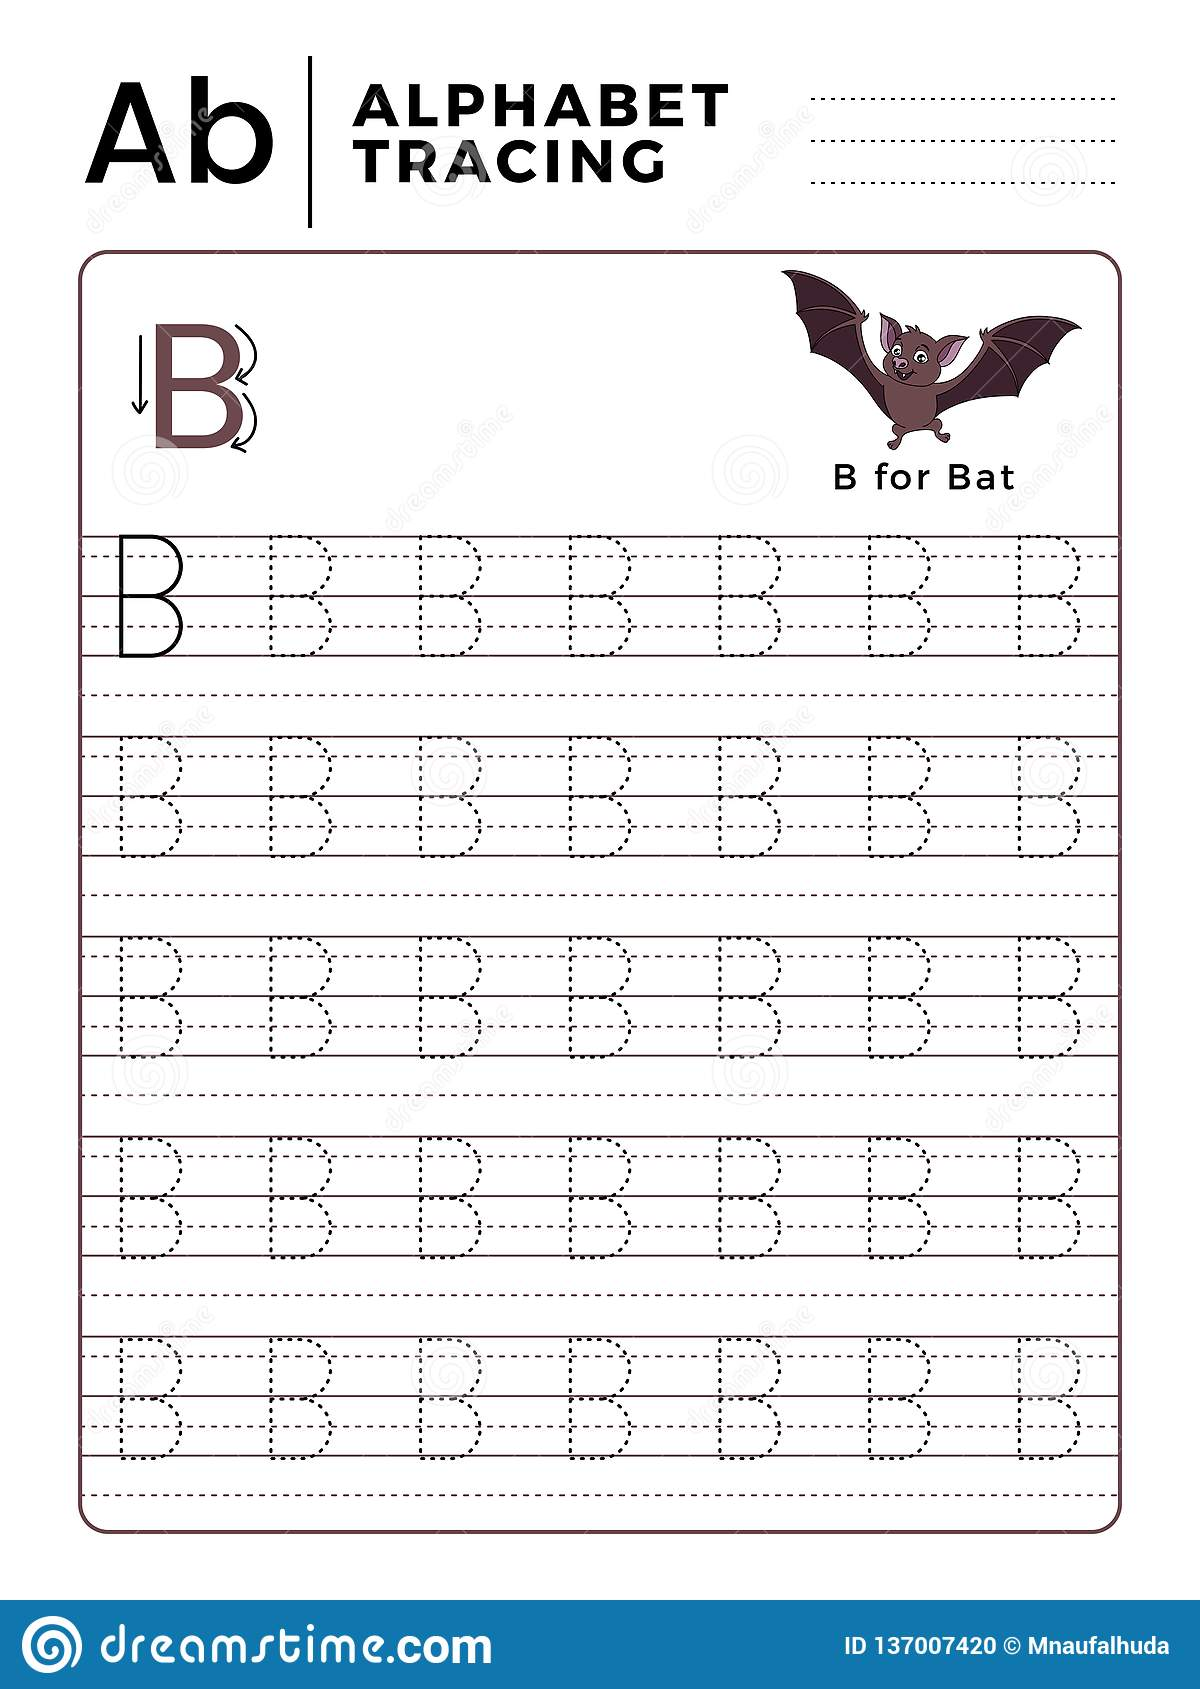 Letter B Alphabet Tracing Book With Example And Funny Bat Cartoon Preschool Worksheet For